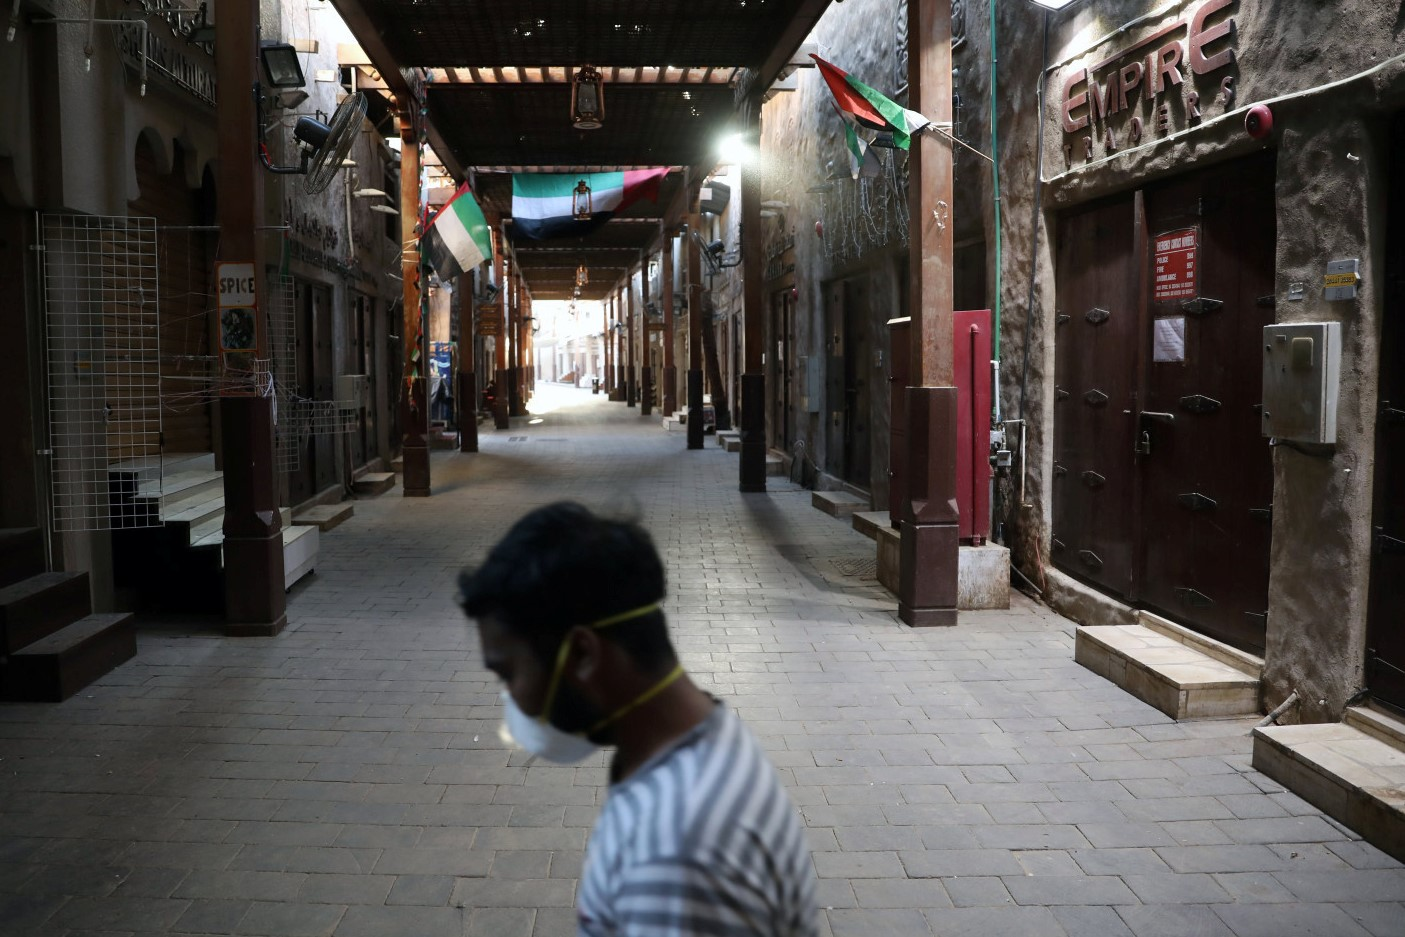 A man wearing a protective face mask walks through the deserted Barajeel Souq, following the outbreak of the coronavirus disease (COVID-19), in old Dubai, United Arab Emirates, March 31